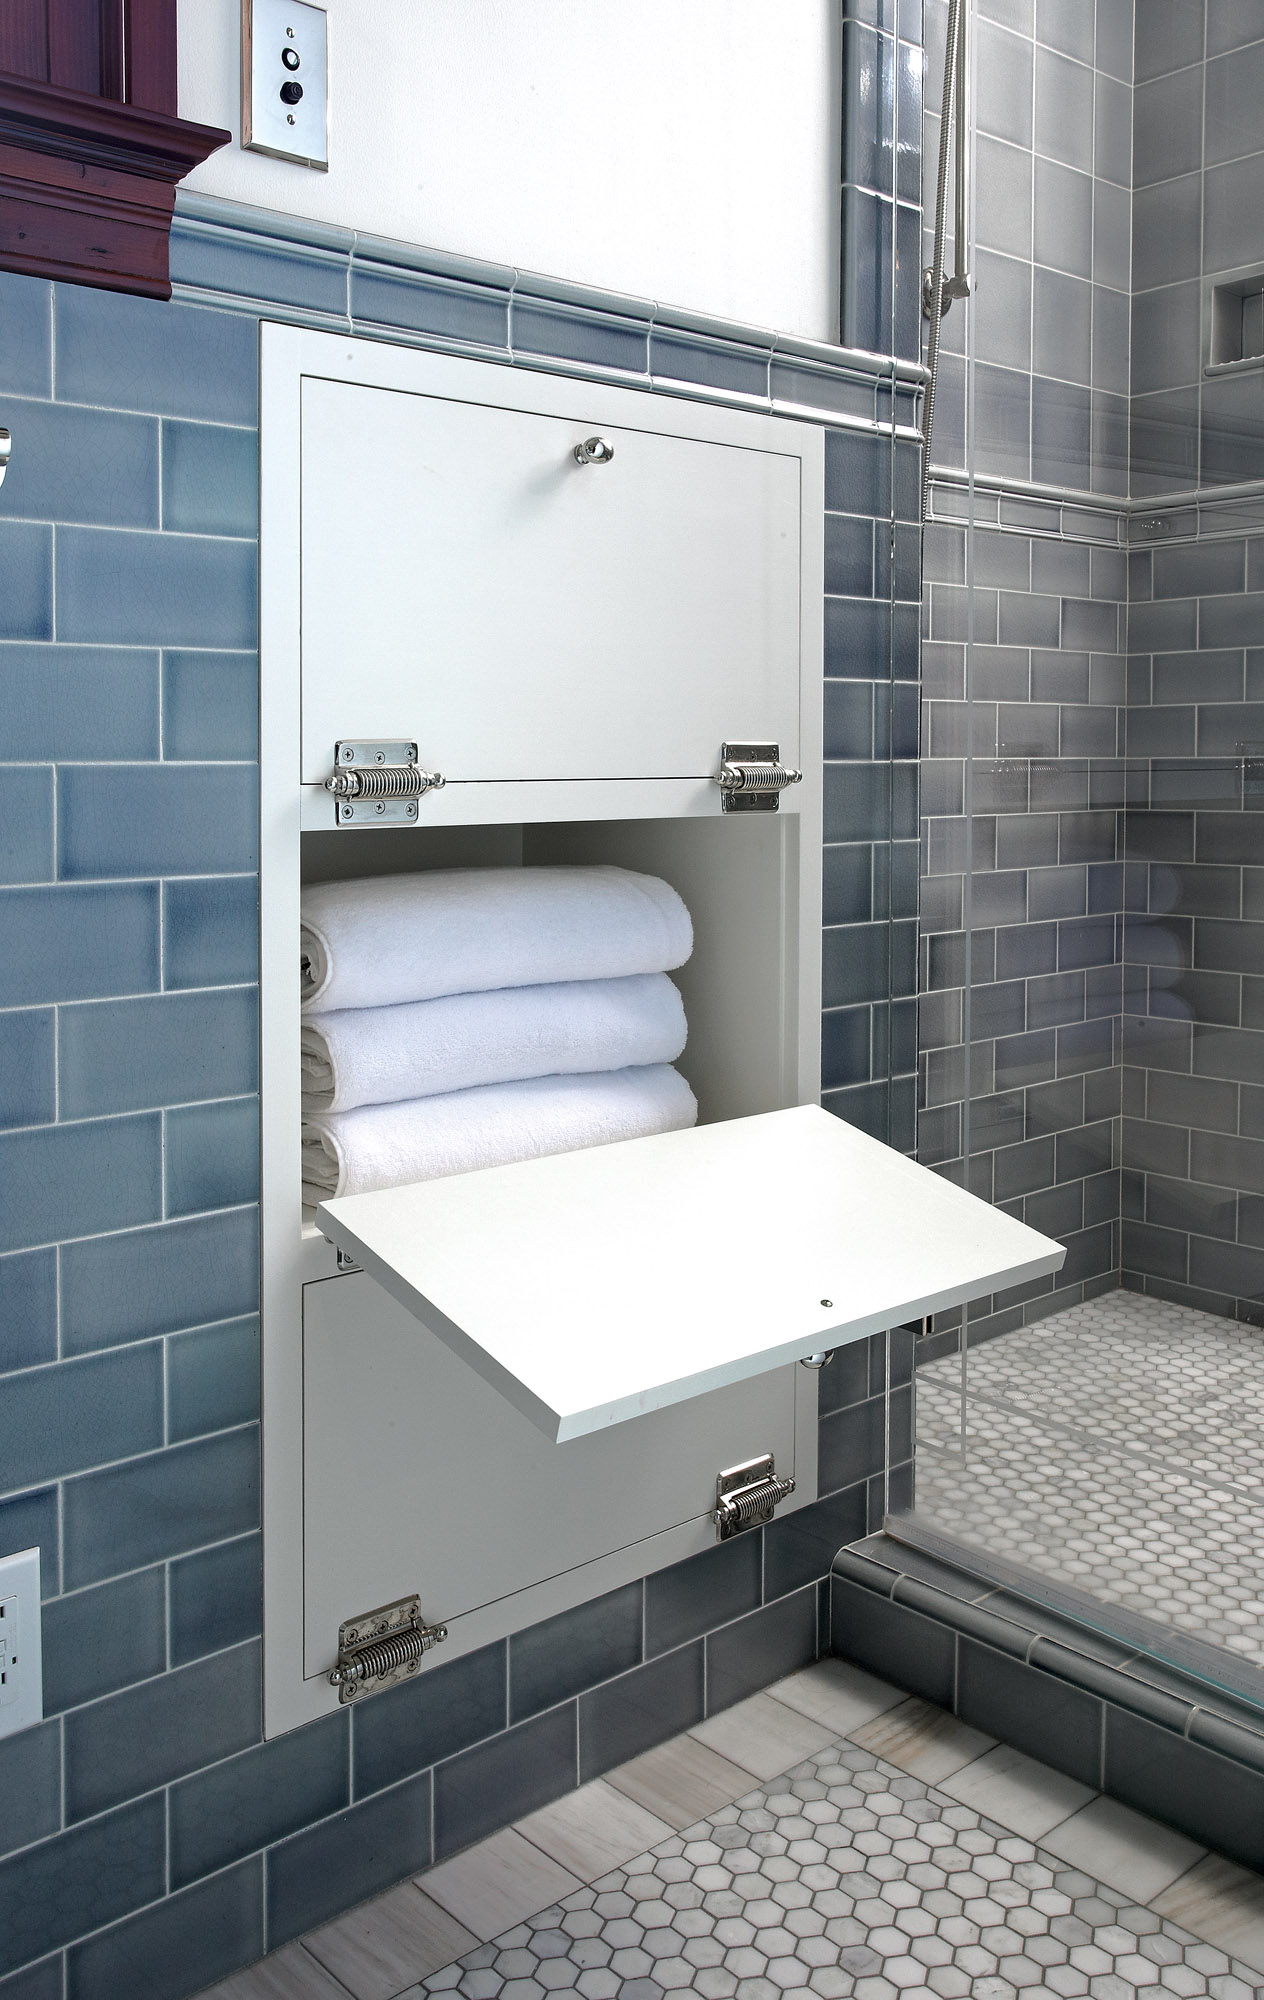 built-in towel nook